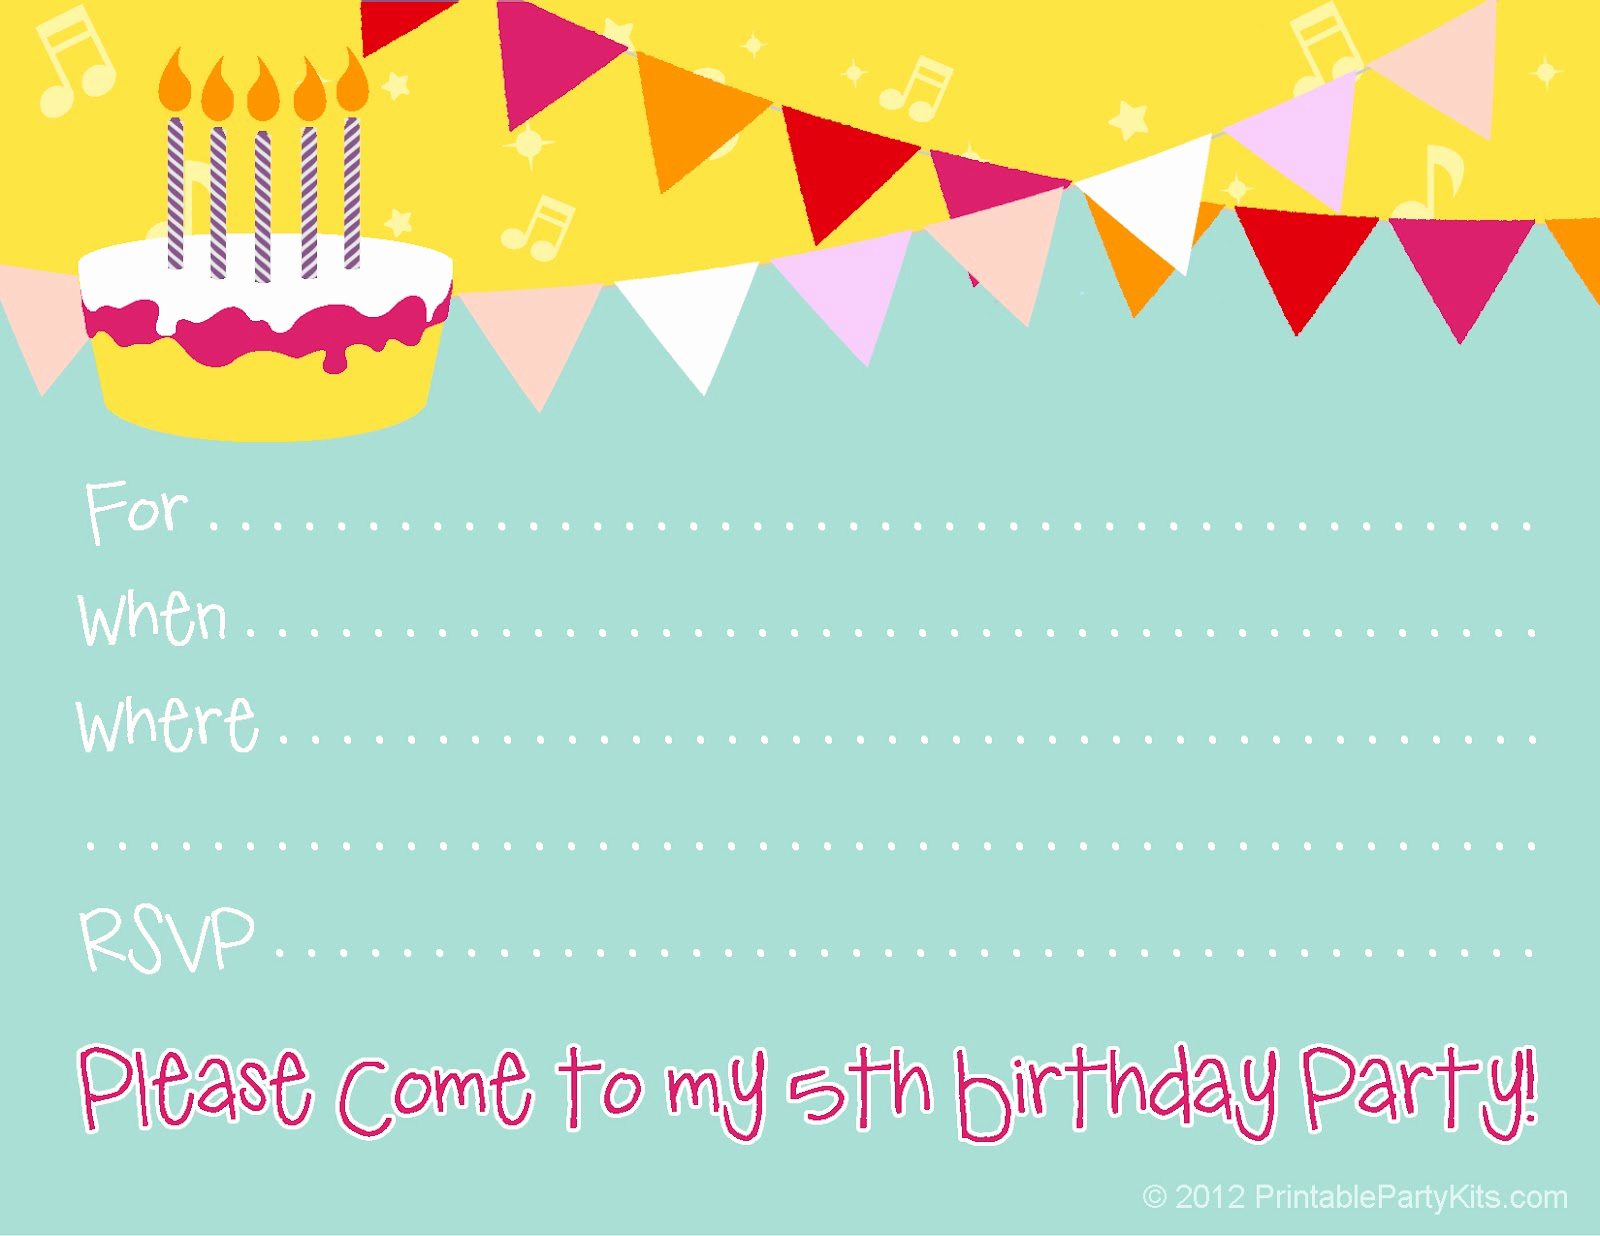 Birthday Party Invitation Template New Free Birthday Party Invitations for Girl – Free Printable